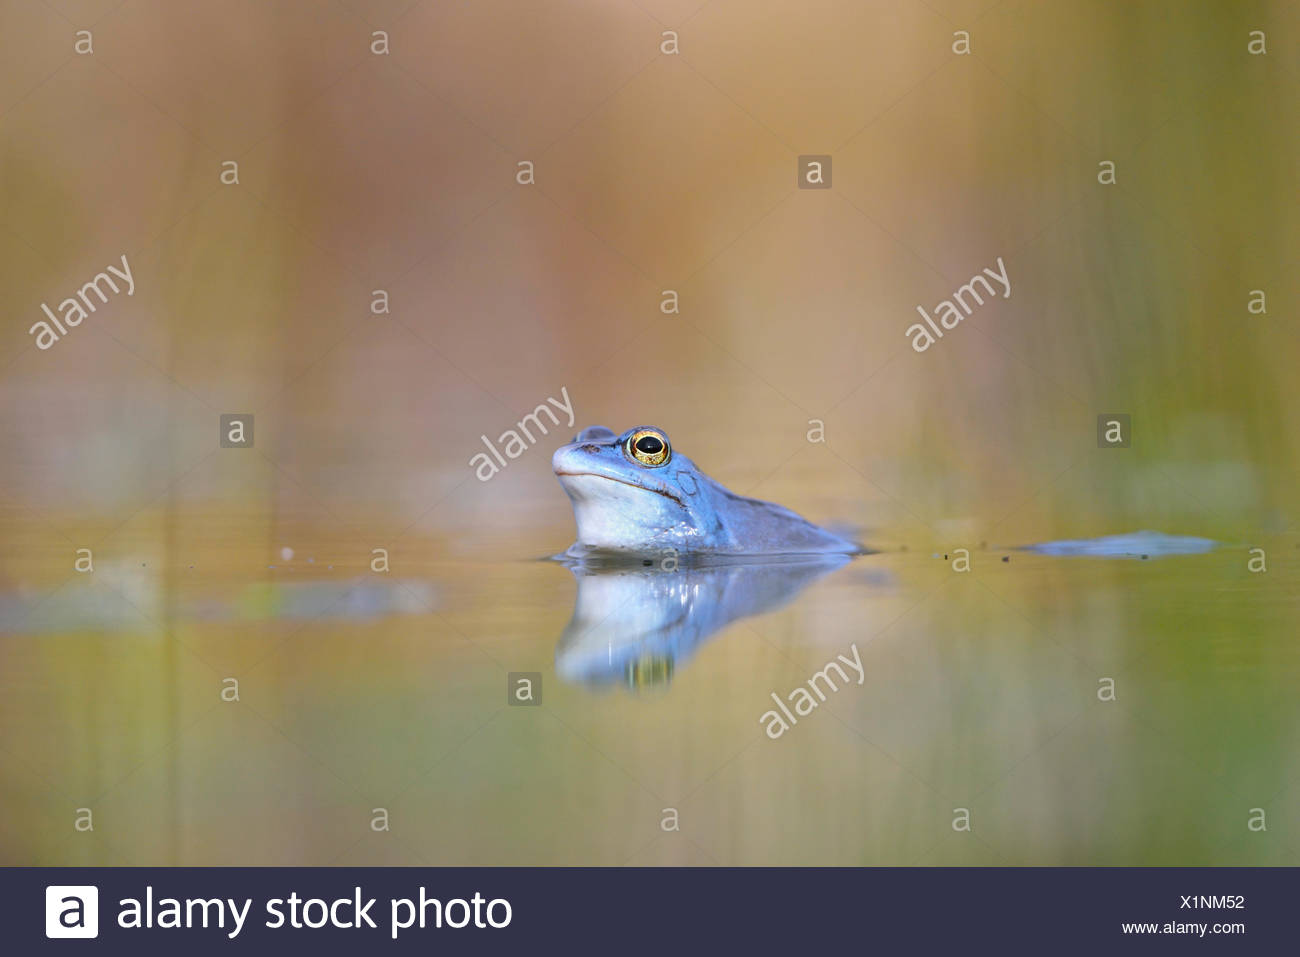 Moor frog (Rana arvalis), male, blue coloured during mating season in spawning waters, Thuringia, Germany - Stock Image